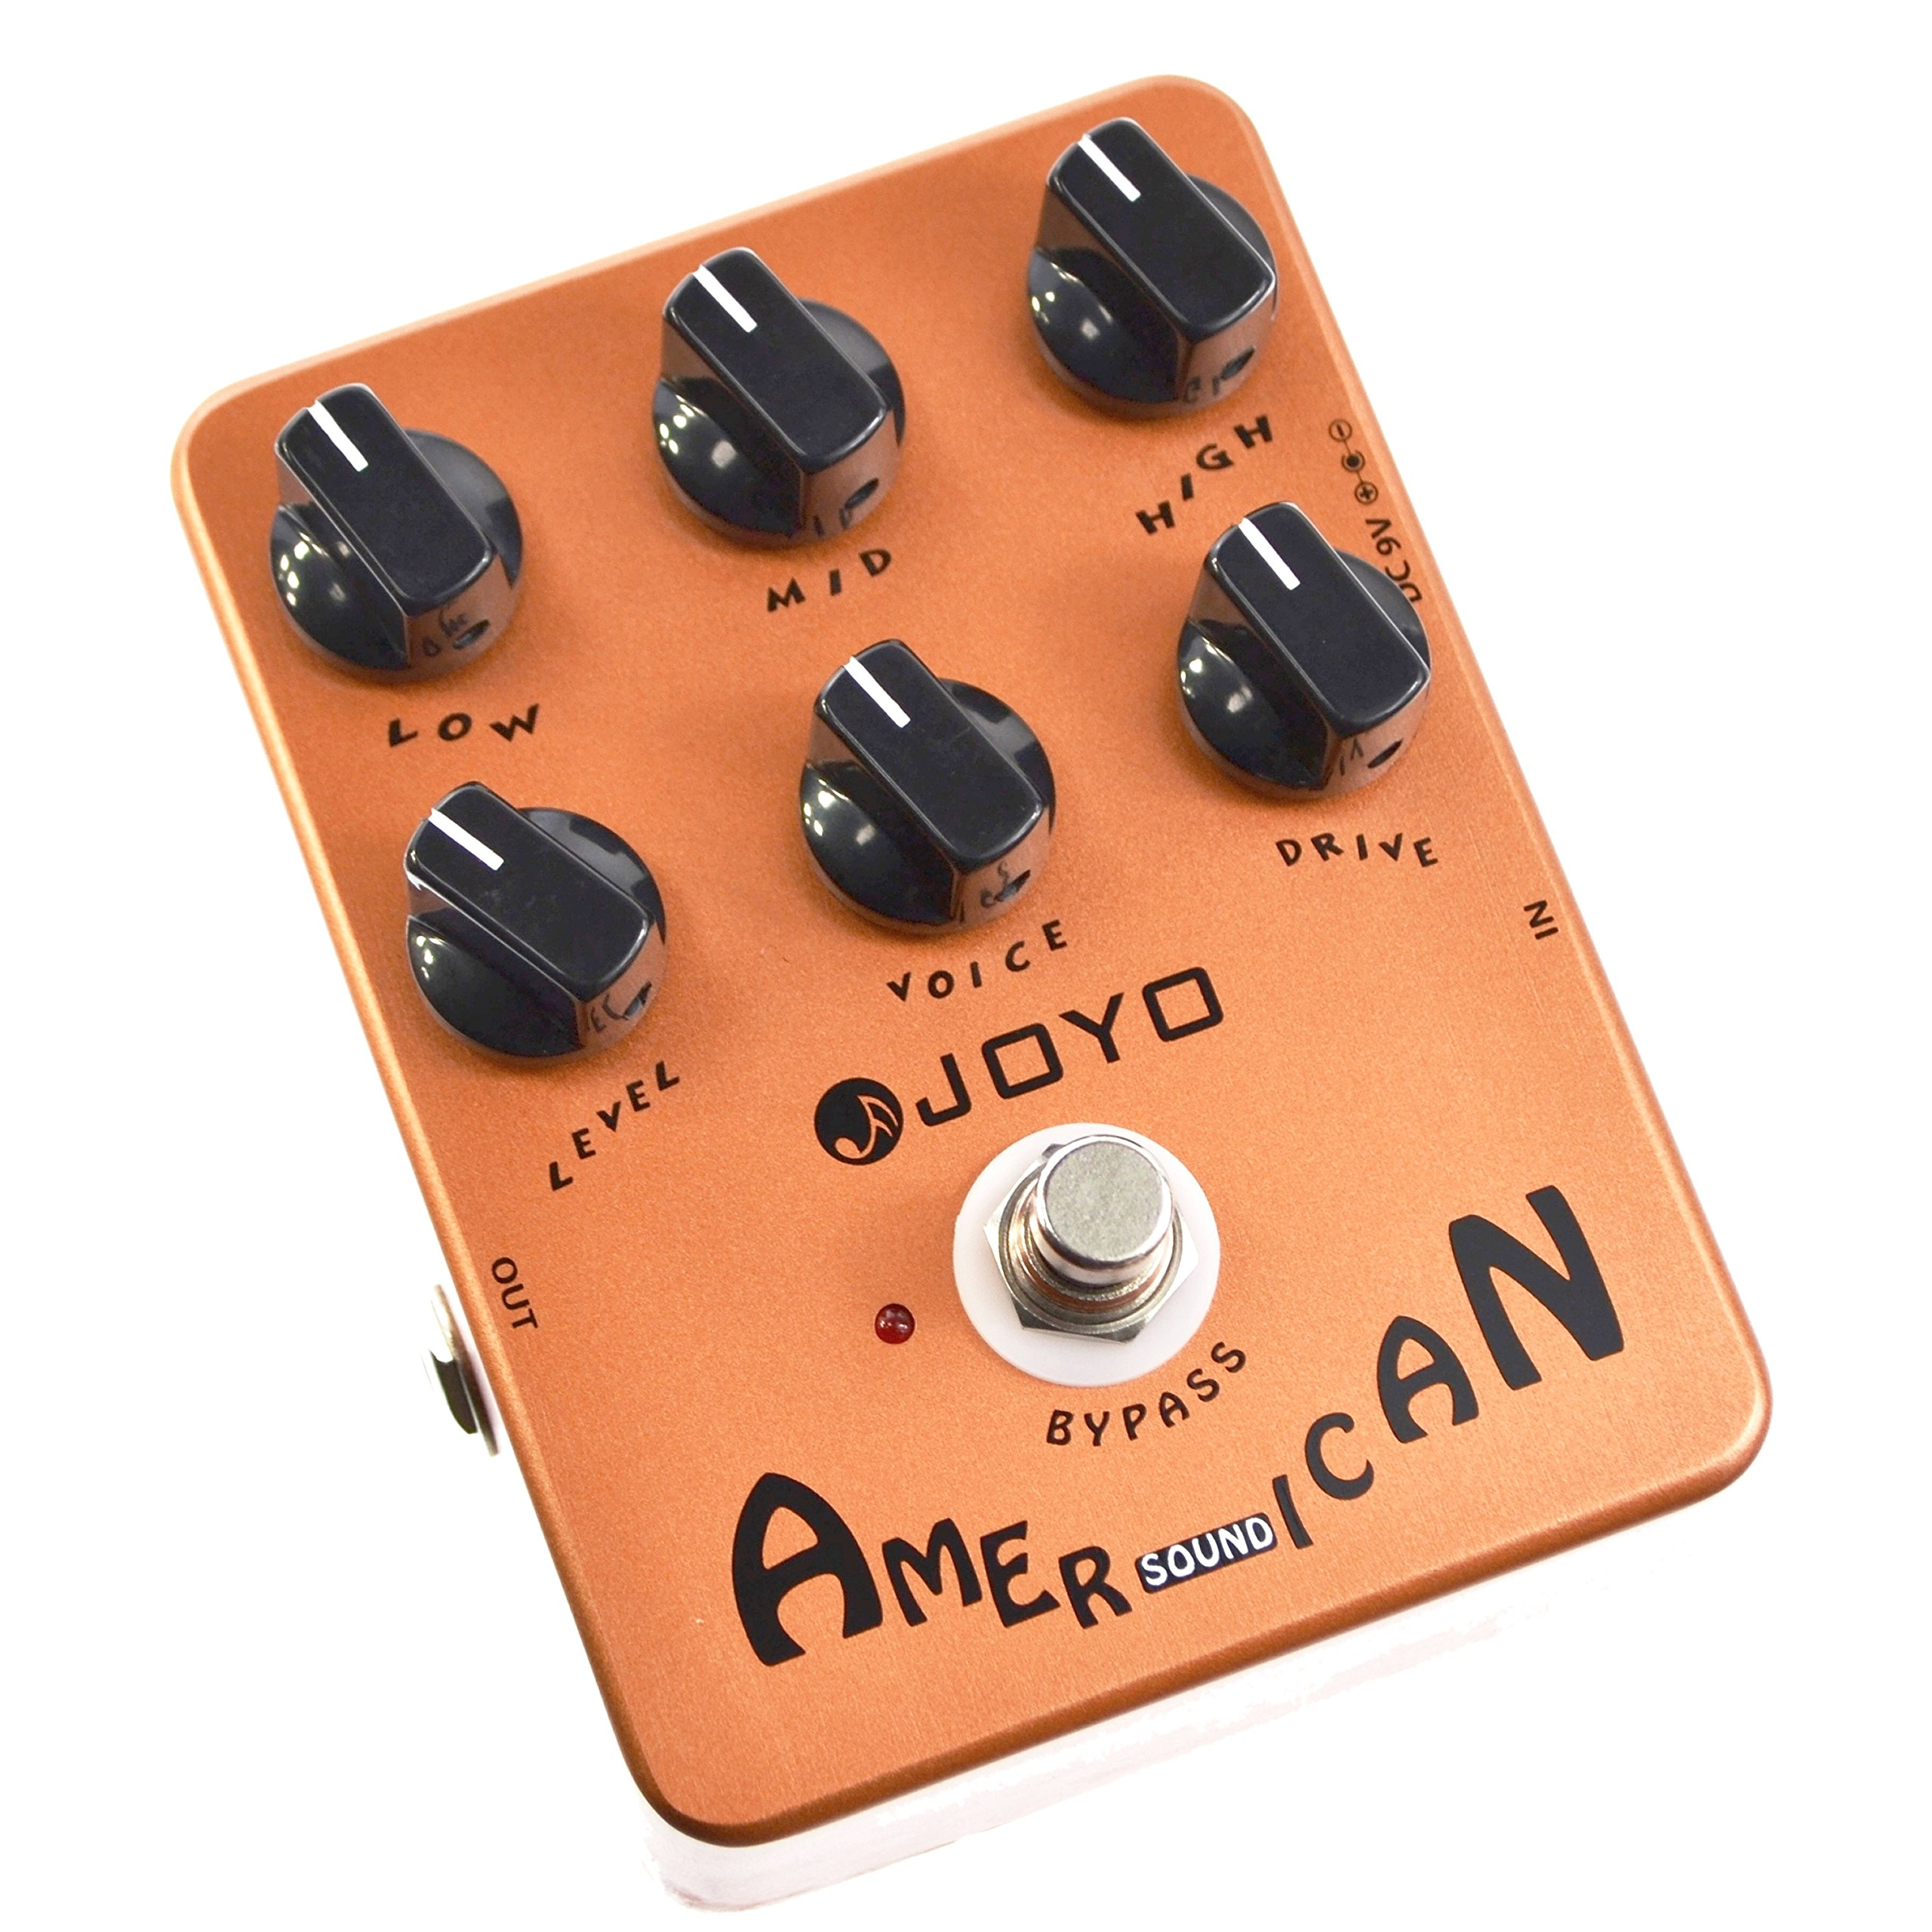 Best Rated In Electric Guitar Mini Headphone Amps Helpful Low Amplifier Is Intended To Be Used Conjunction With An Joyo Jf 14 American Sound Effects Pedal Simulation Voice Control Product Image